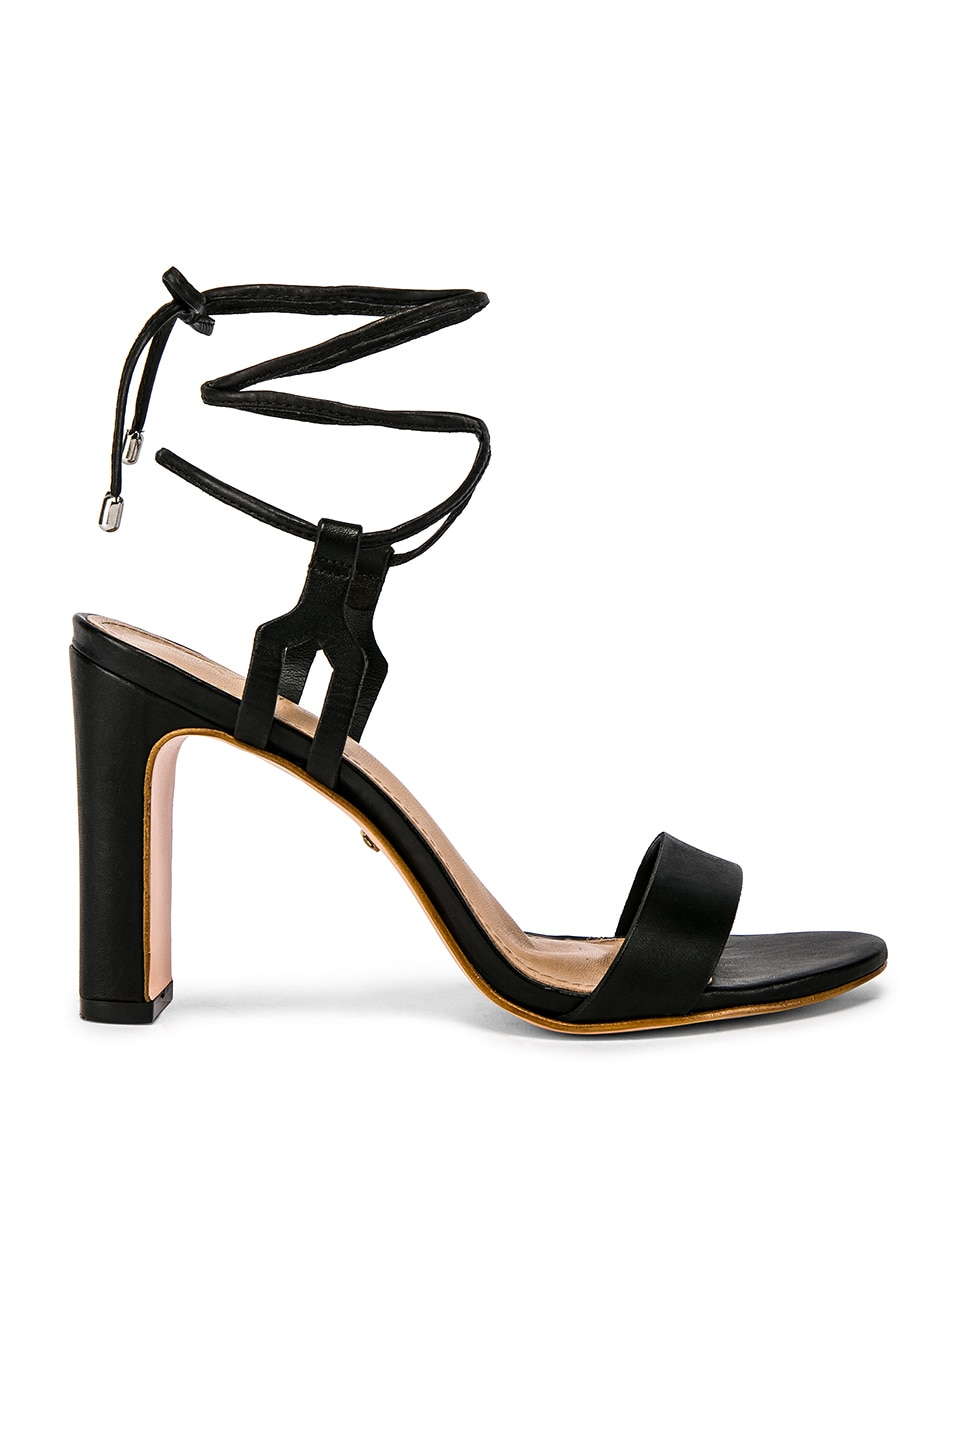 RAYE Kendall Heel in Black